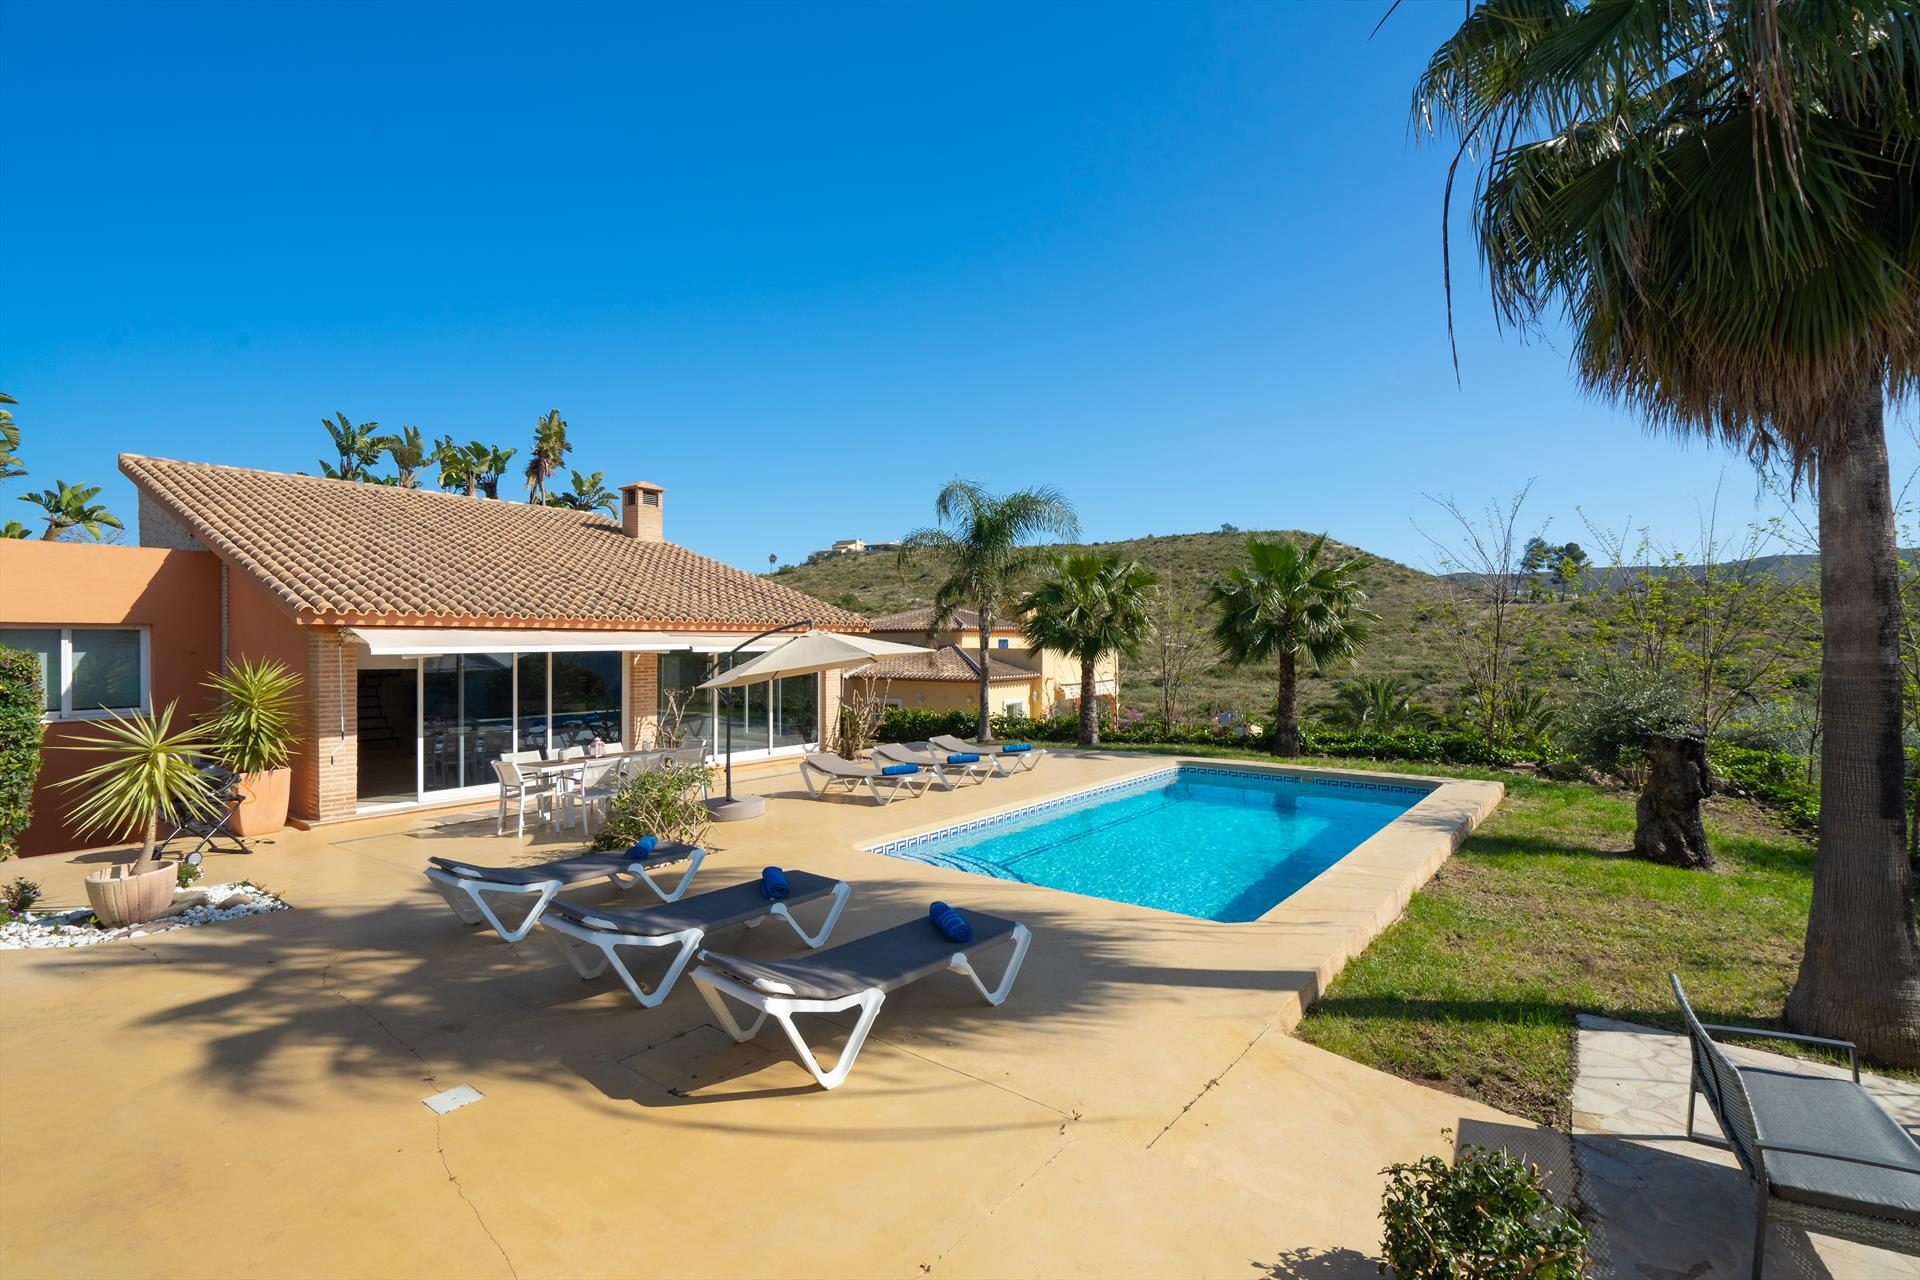 Ferienhaus Mit Pool In Xabia Ariel Holiday Home In Javea Costa Blanca Spain